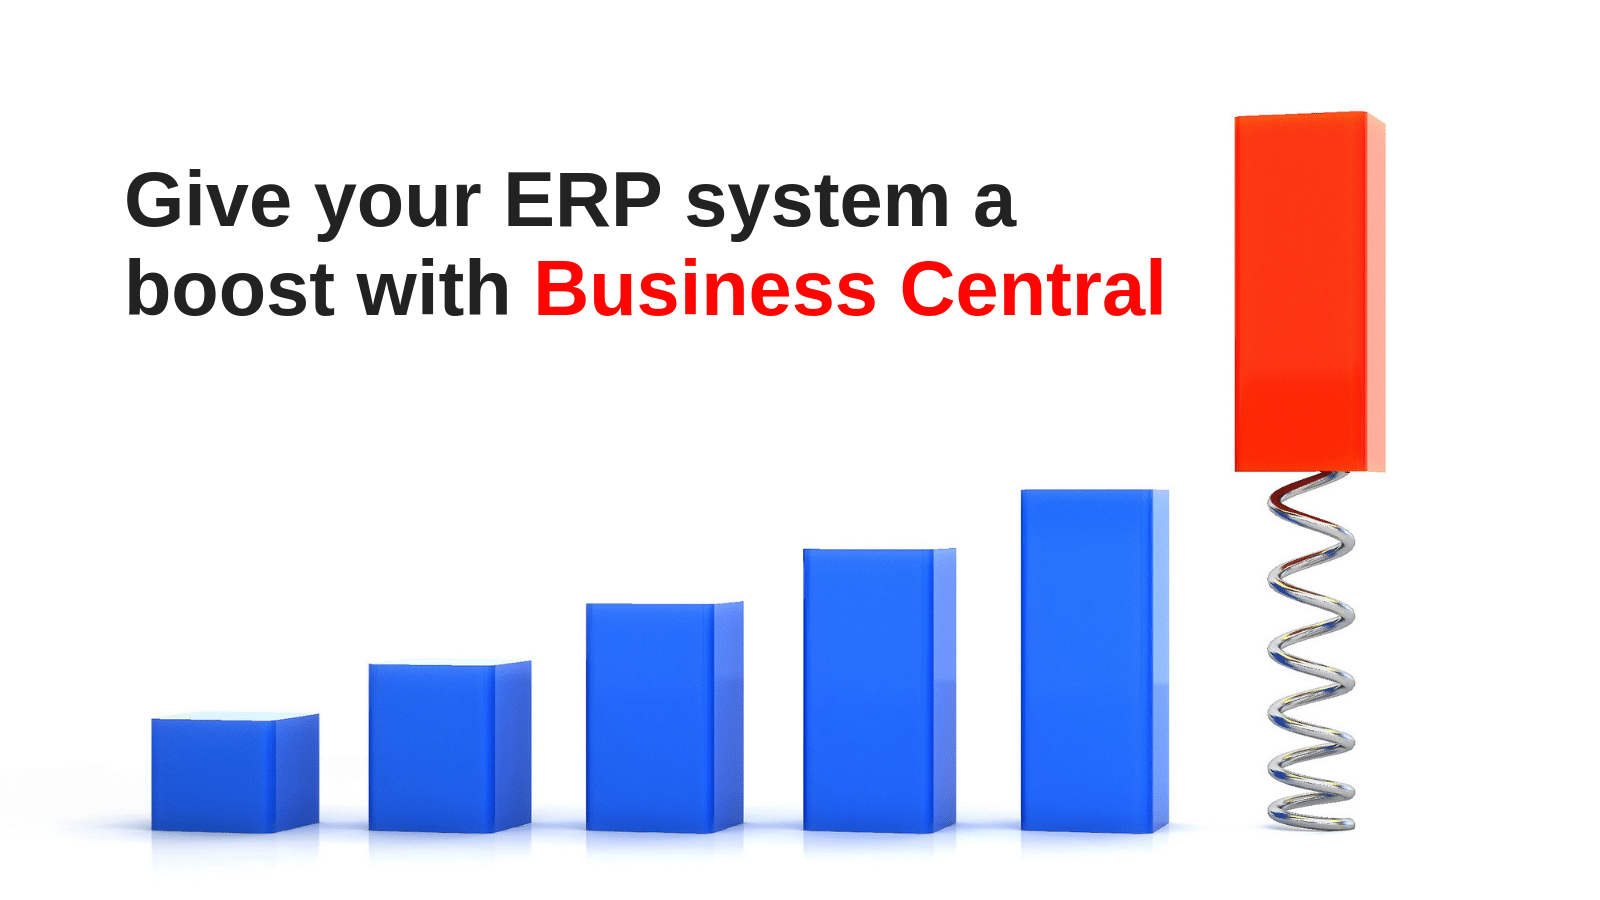 Give your ERP system a boost with Business Central